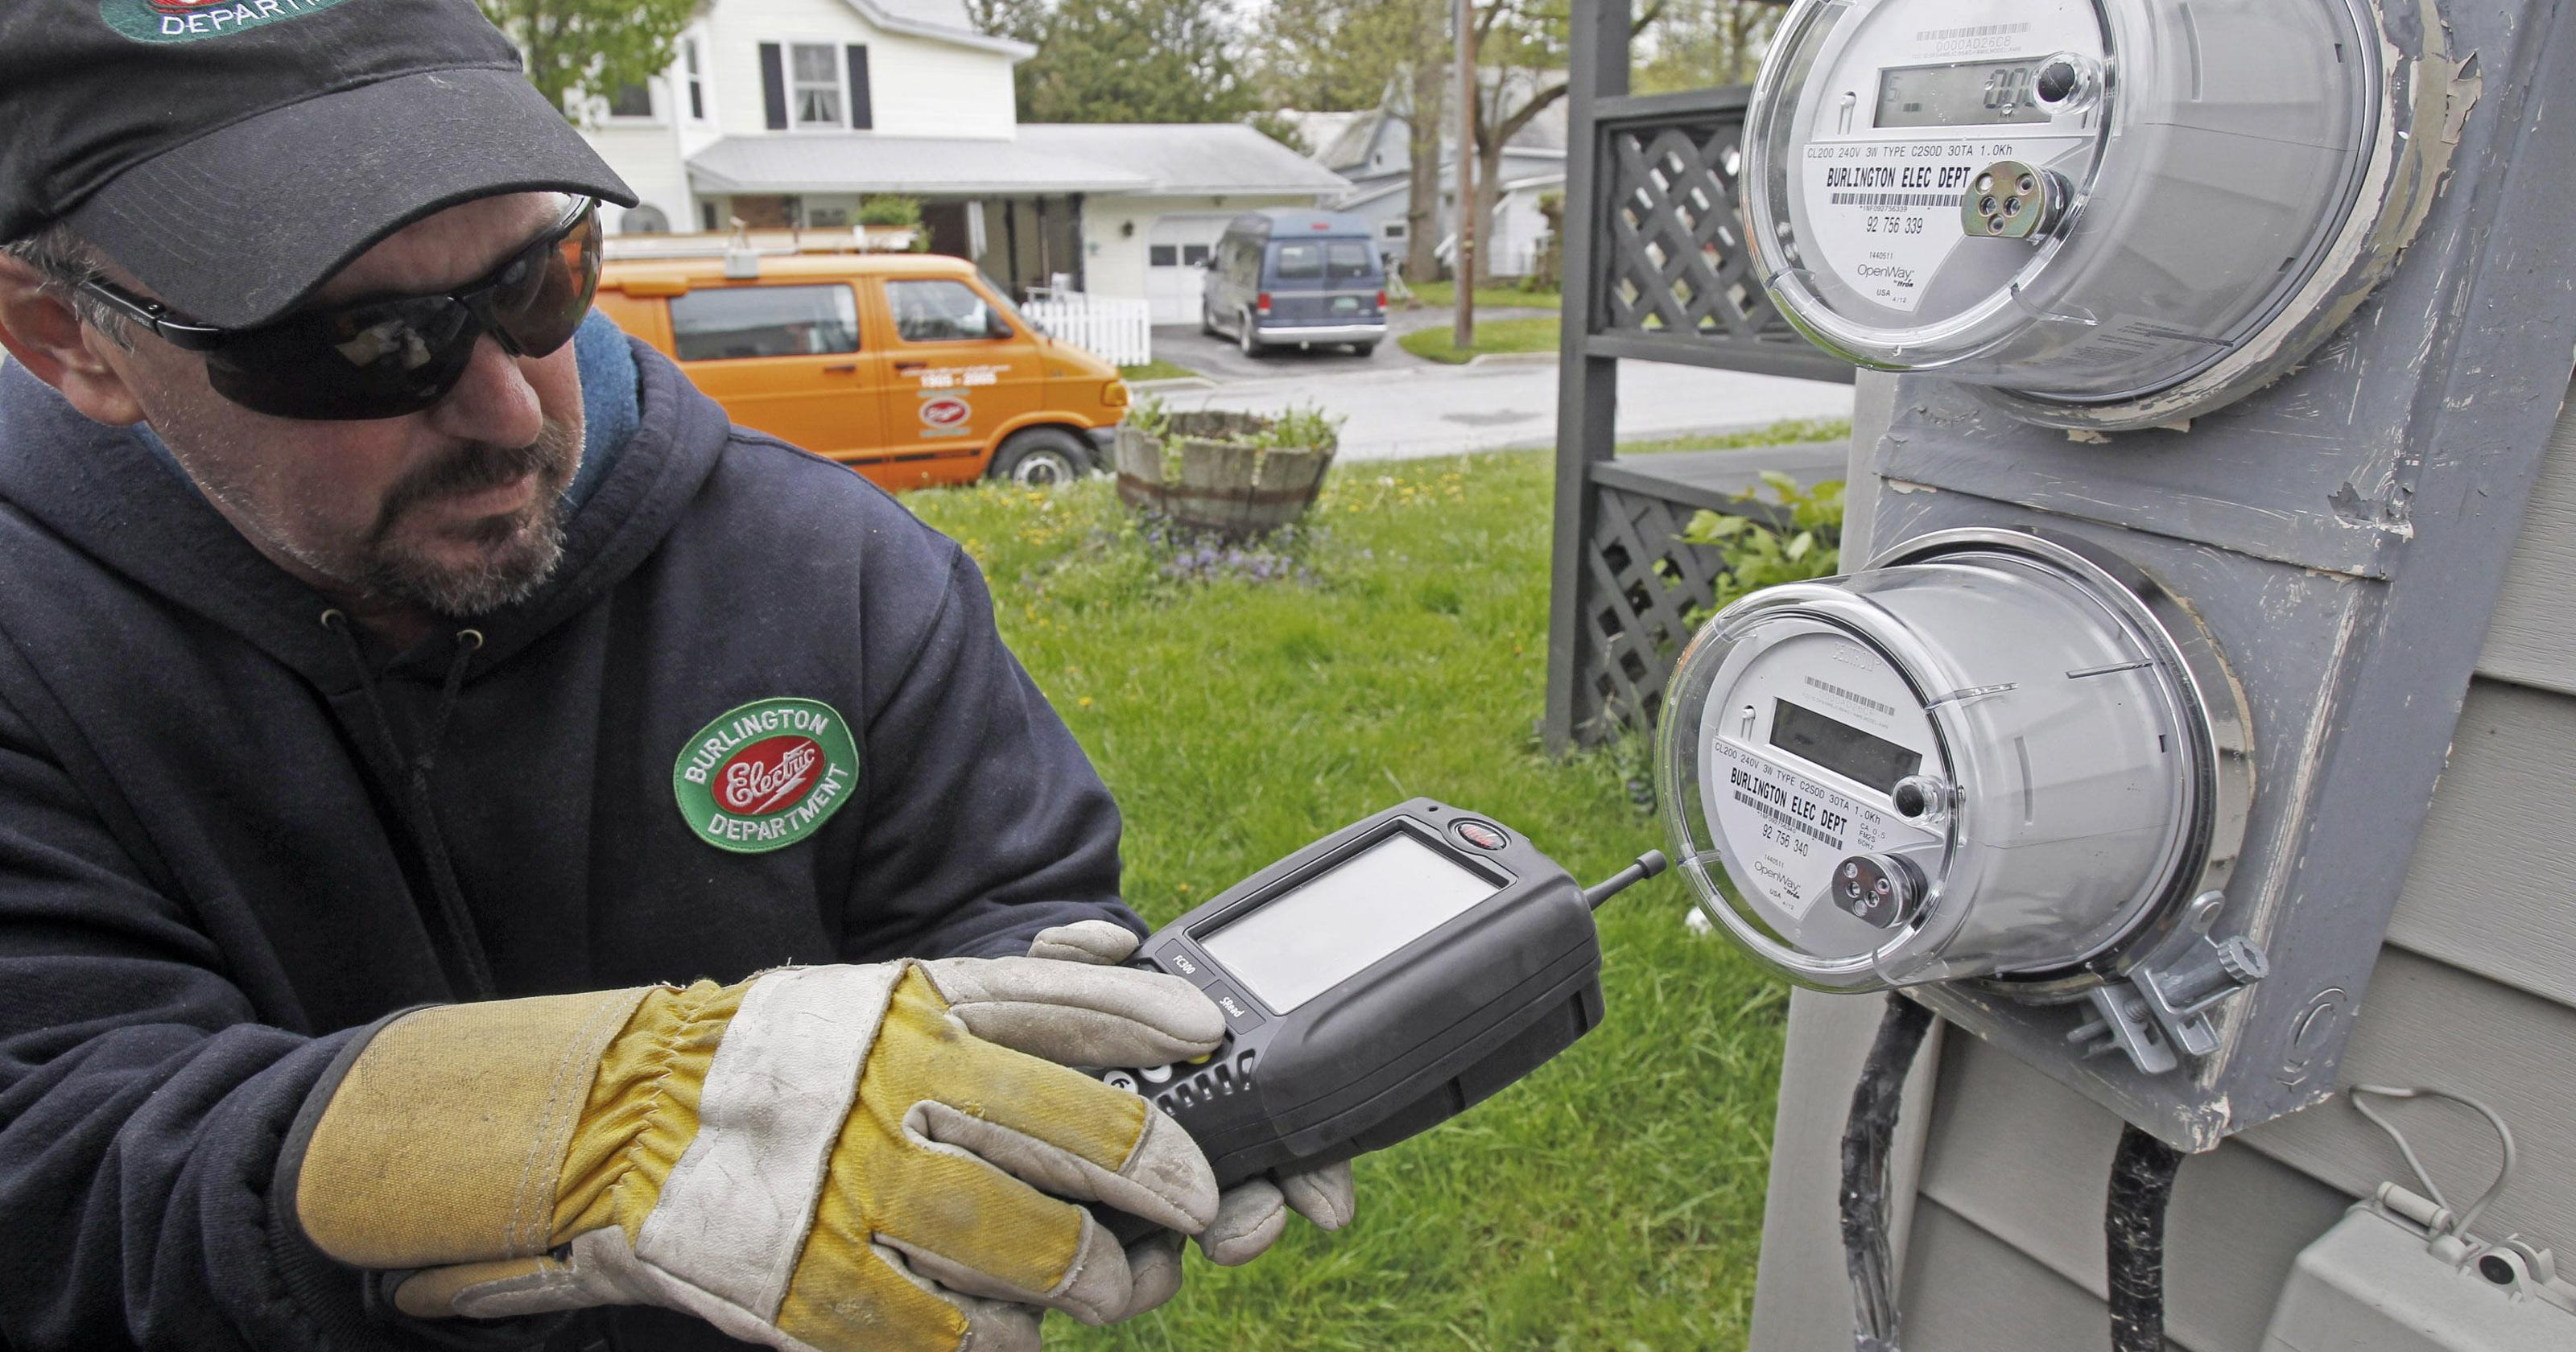 Delmarva Power warns of risks when stealing electricity